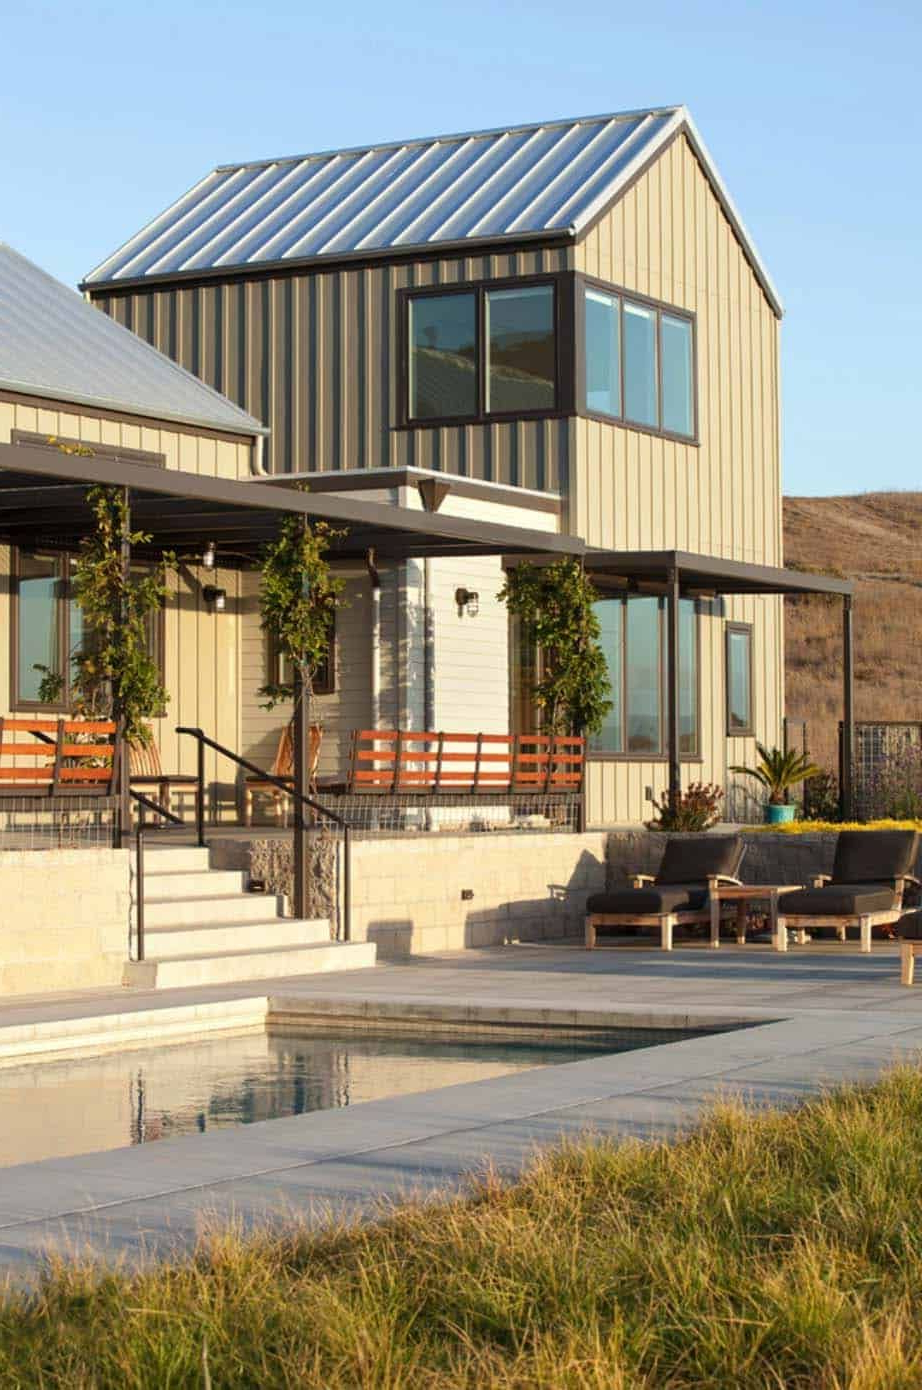 Sustainably Designed Modern Farmhouse Near The California